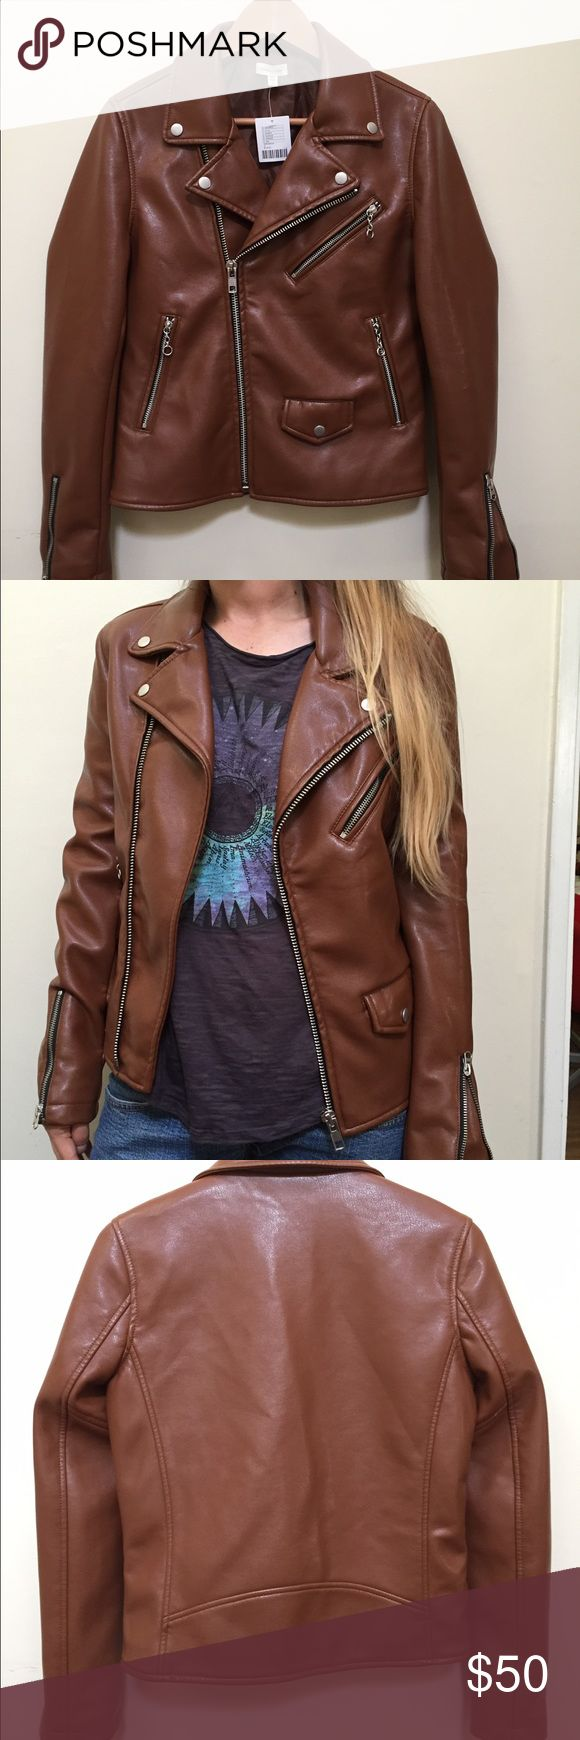 Urban Outfitters Vegan Motorcycle Jacket Perfect for fall! Hipster cognac brown vegan leather jacket from Urban Outfitters! Brand: Silence + Noise; Size: Small Urban Outfitters Jackets & Coats